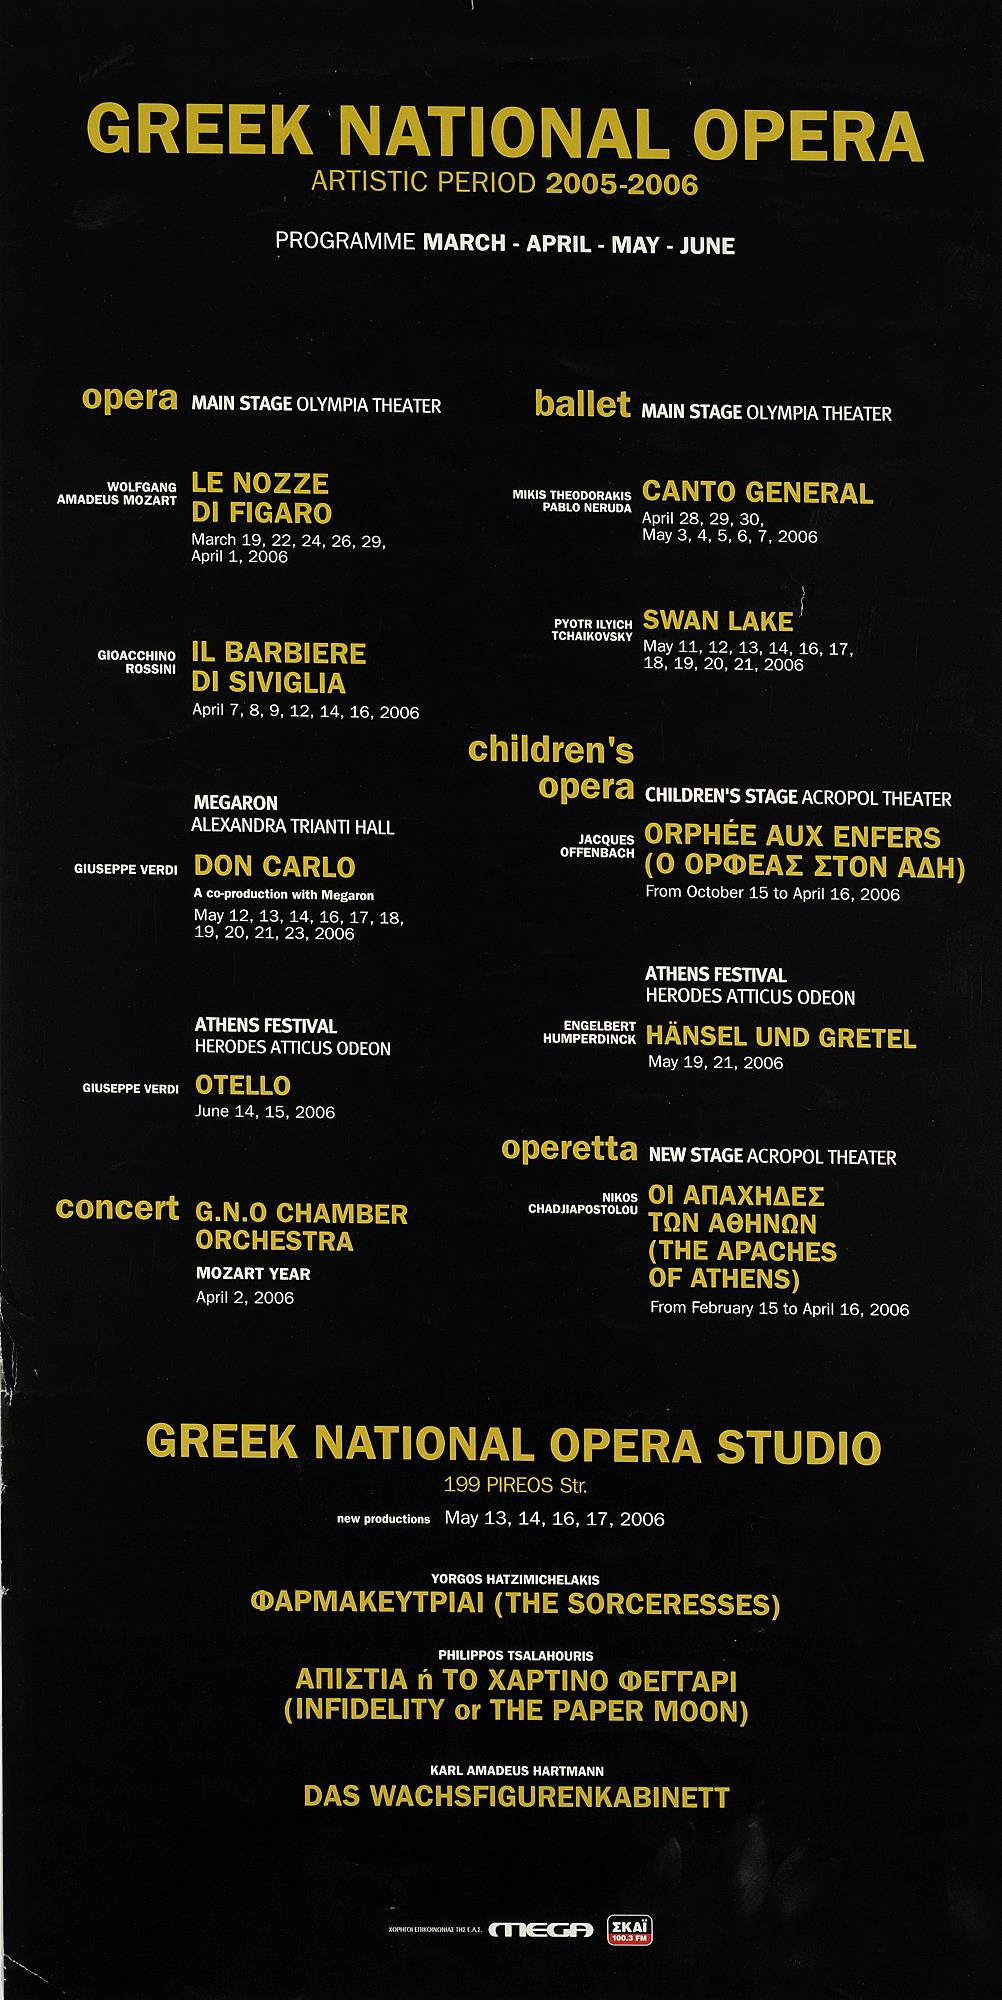 Greek National Opera, Programme March-April-May-June, 2005-2006